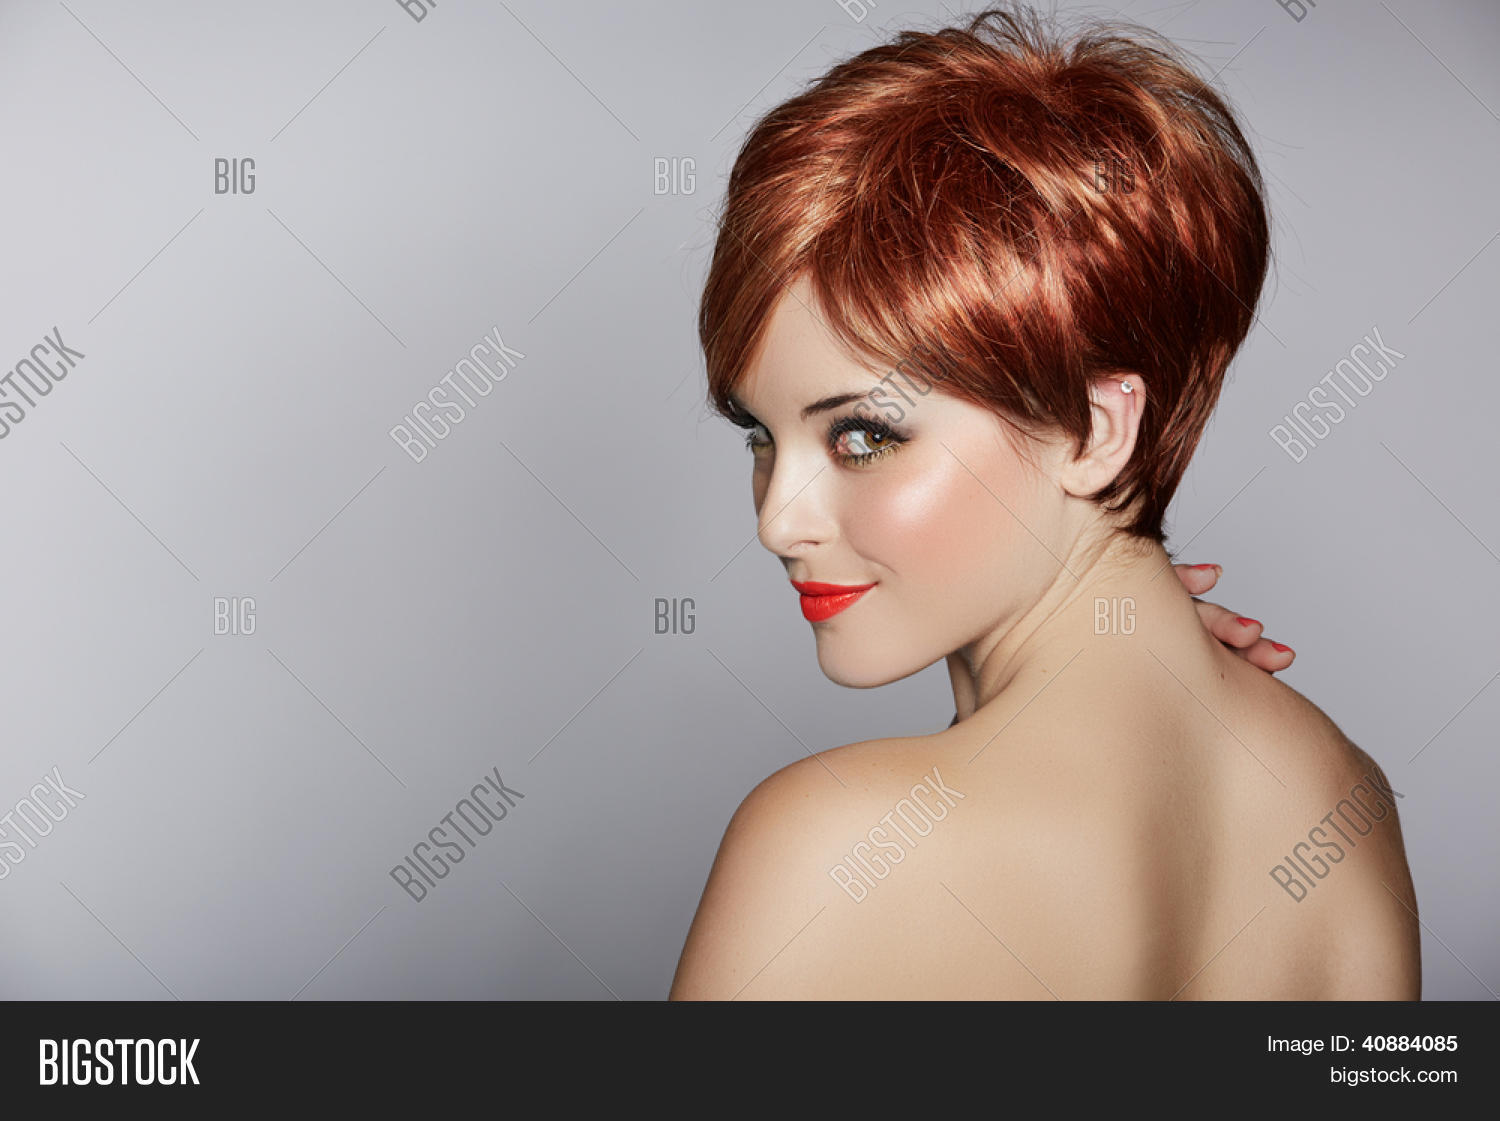 Hair Styles For Short Red Hair: Beautiful Young Woman Image & Photo (Free Trial)